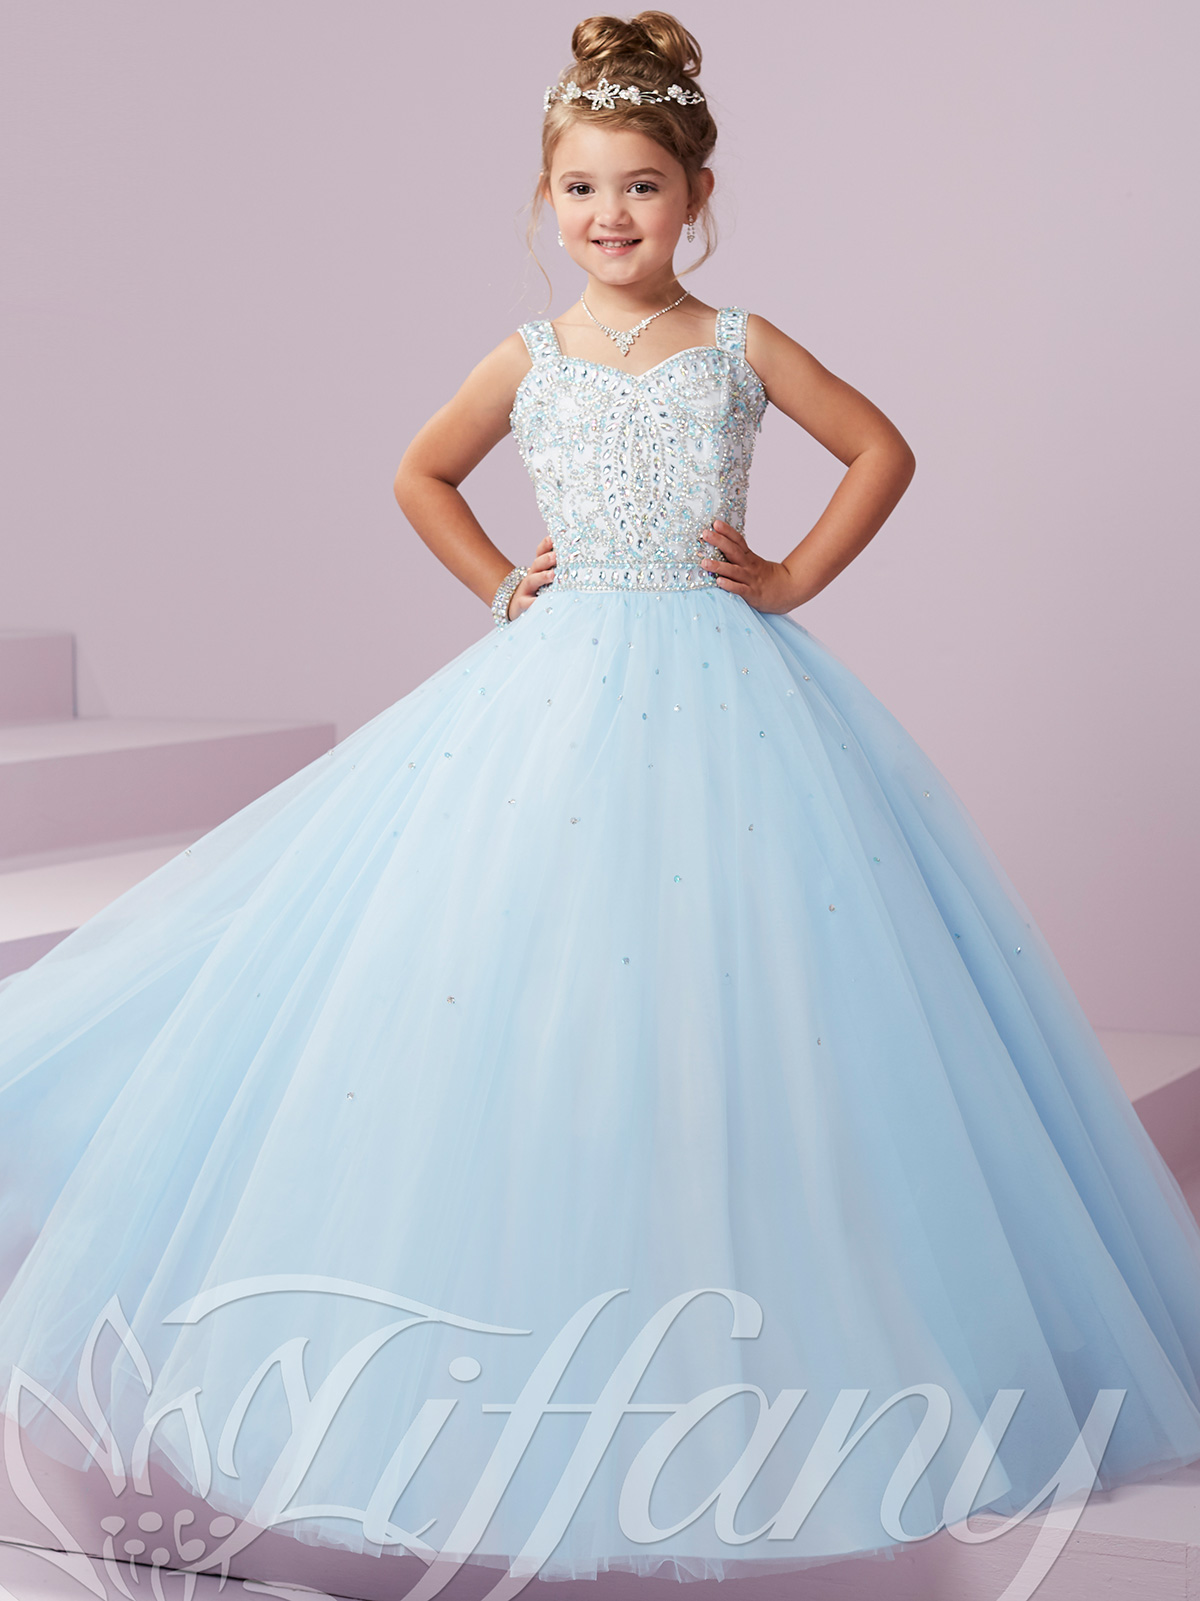 Tiffany Princess 13494 Sweetheart Pageant Gown|PageantDesigns.com